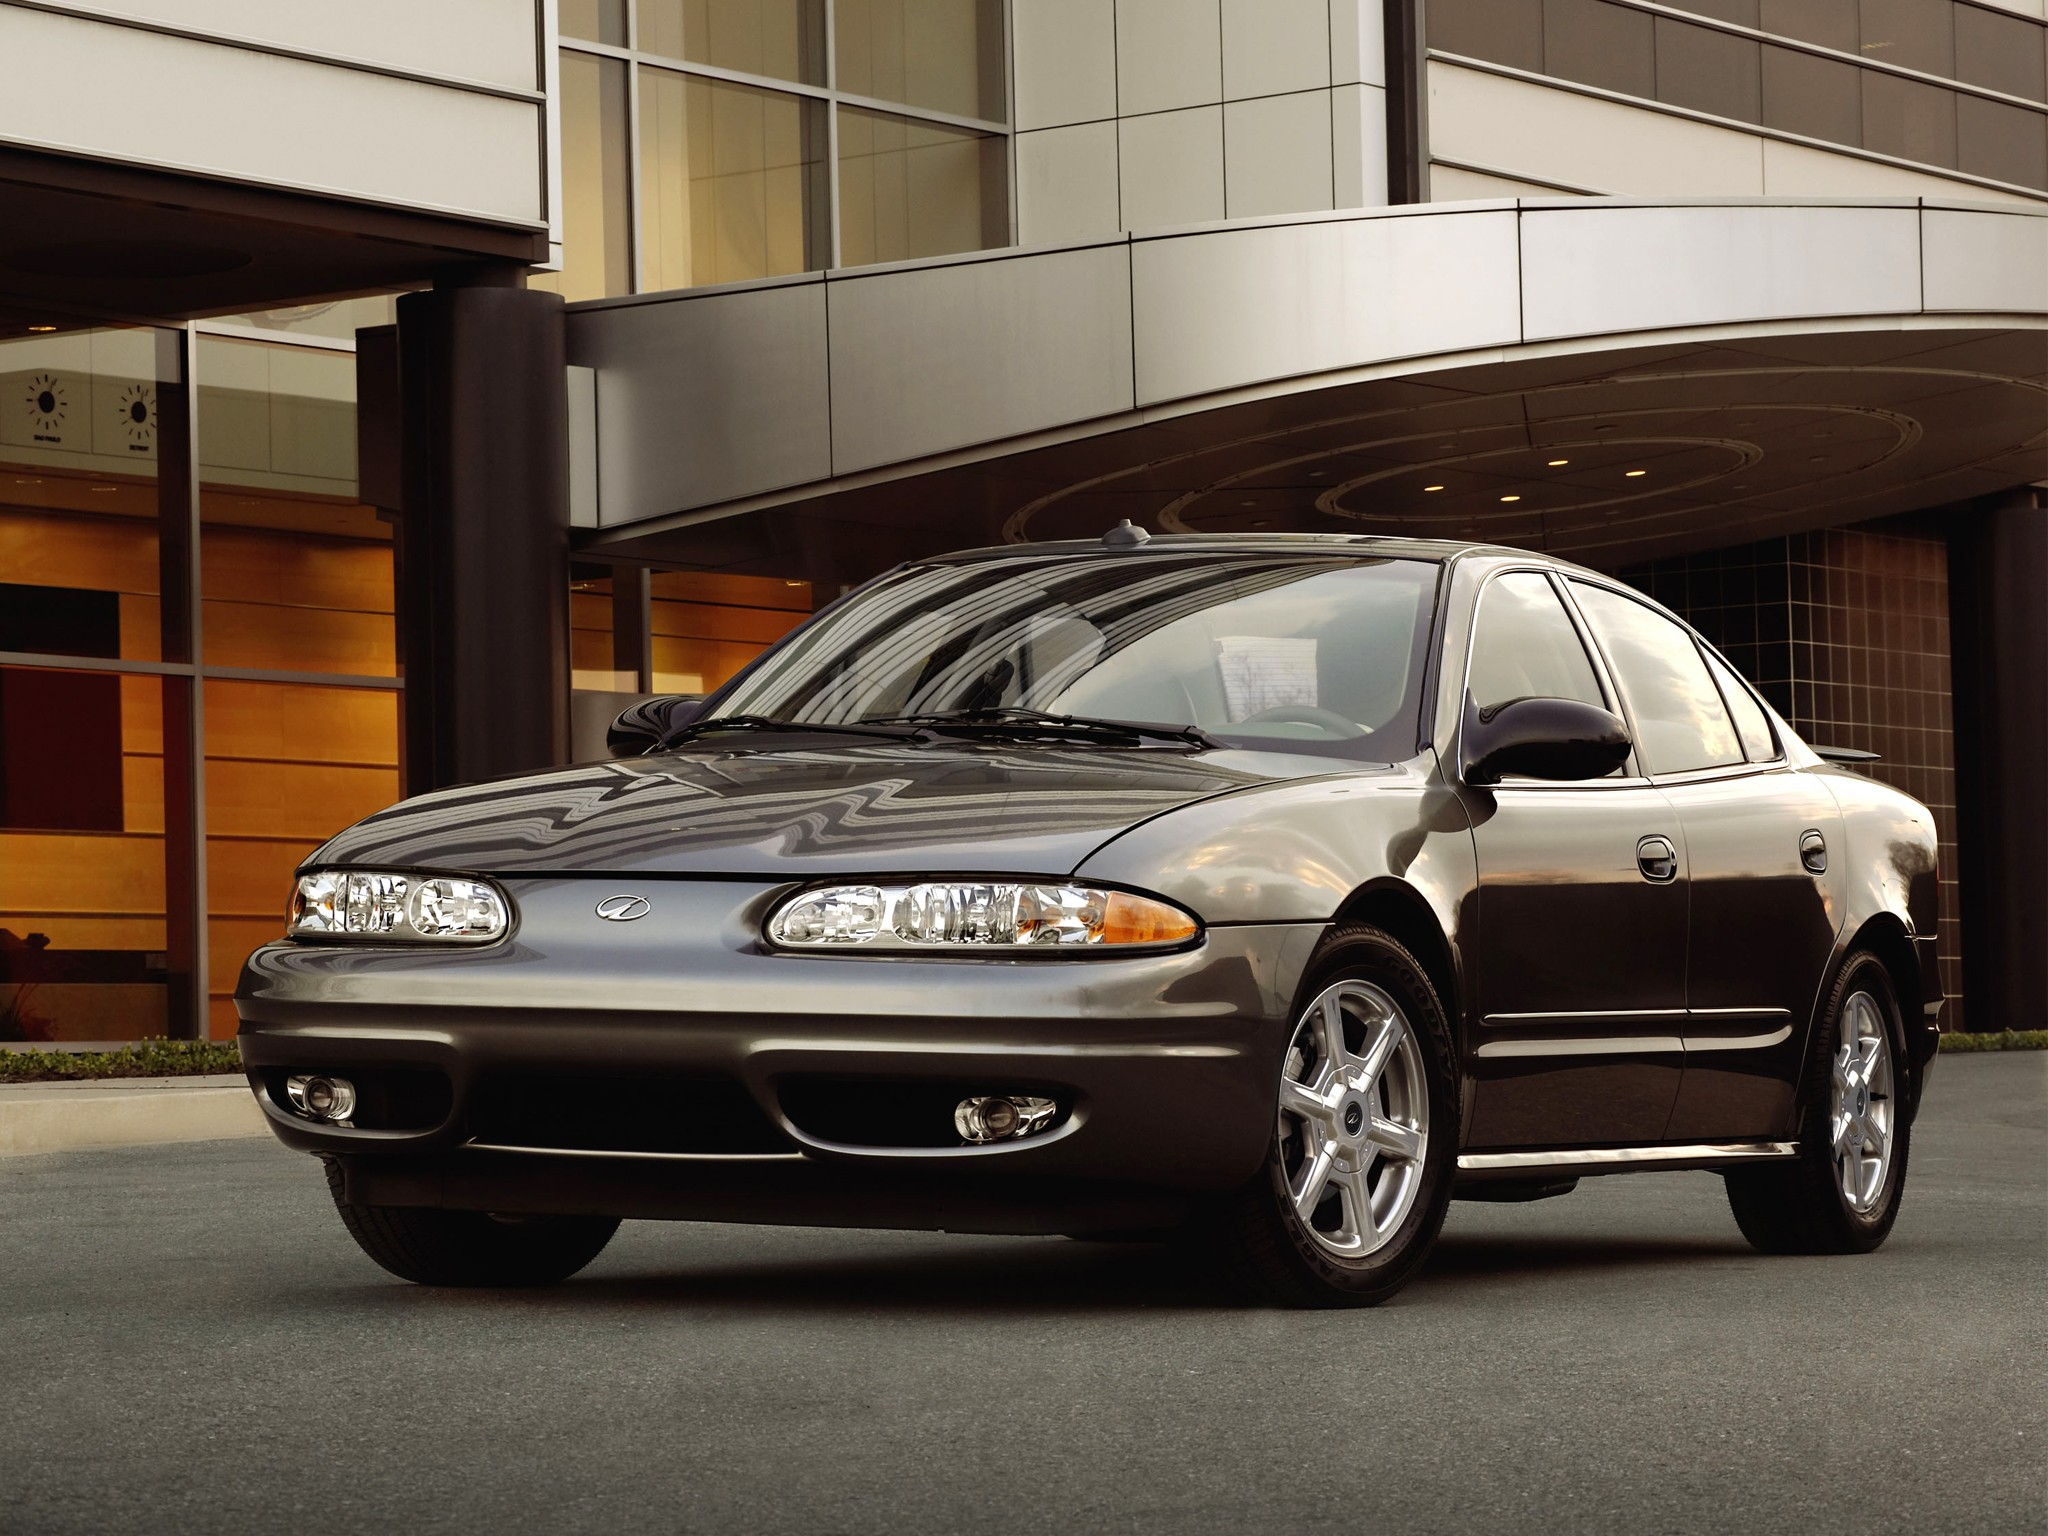 OLDSMOBILE Alero sedan specs & photos - 1999, 2000, 2001 ...